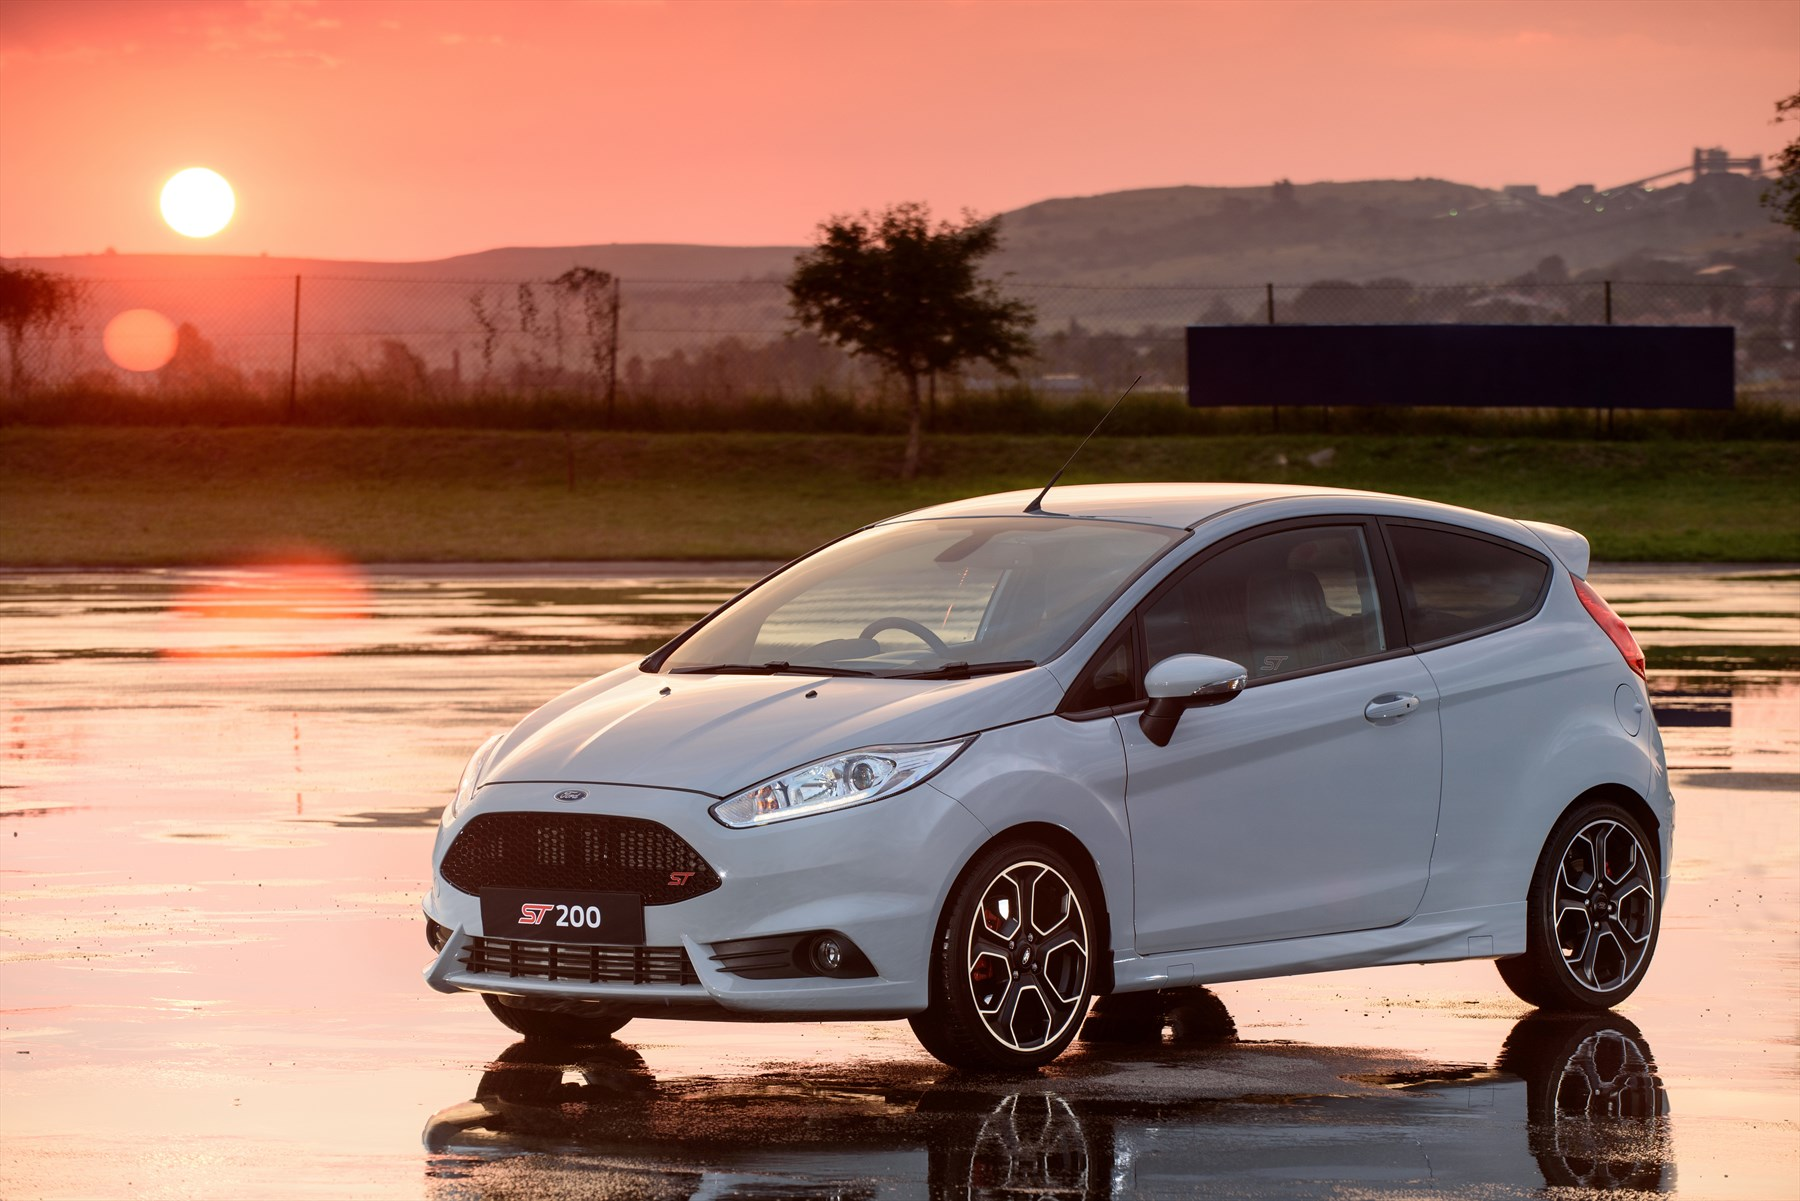 best of the breed special edition ford fiesta st200. Black Bedroom Furniture Sets. Home Design Ideas